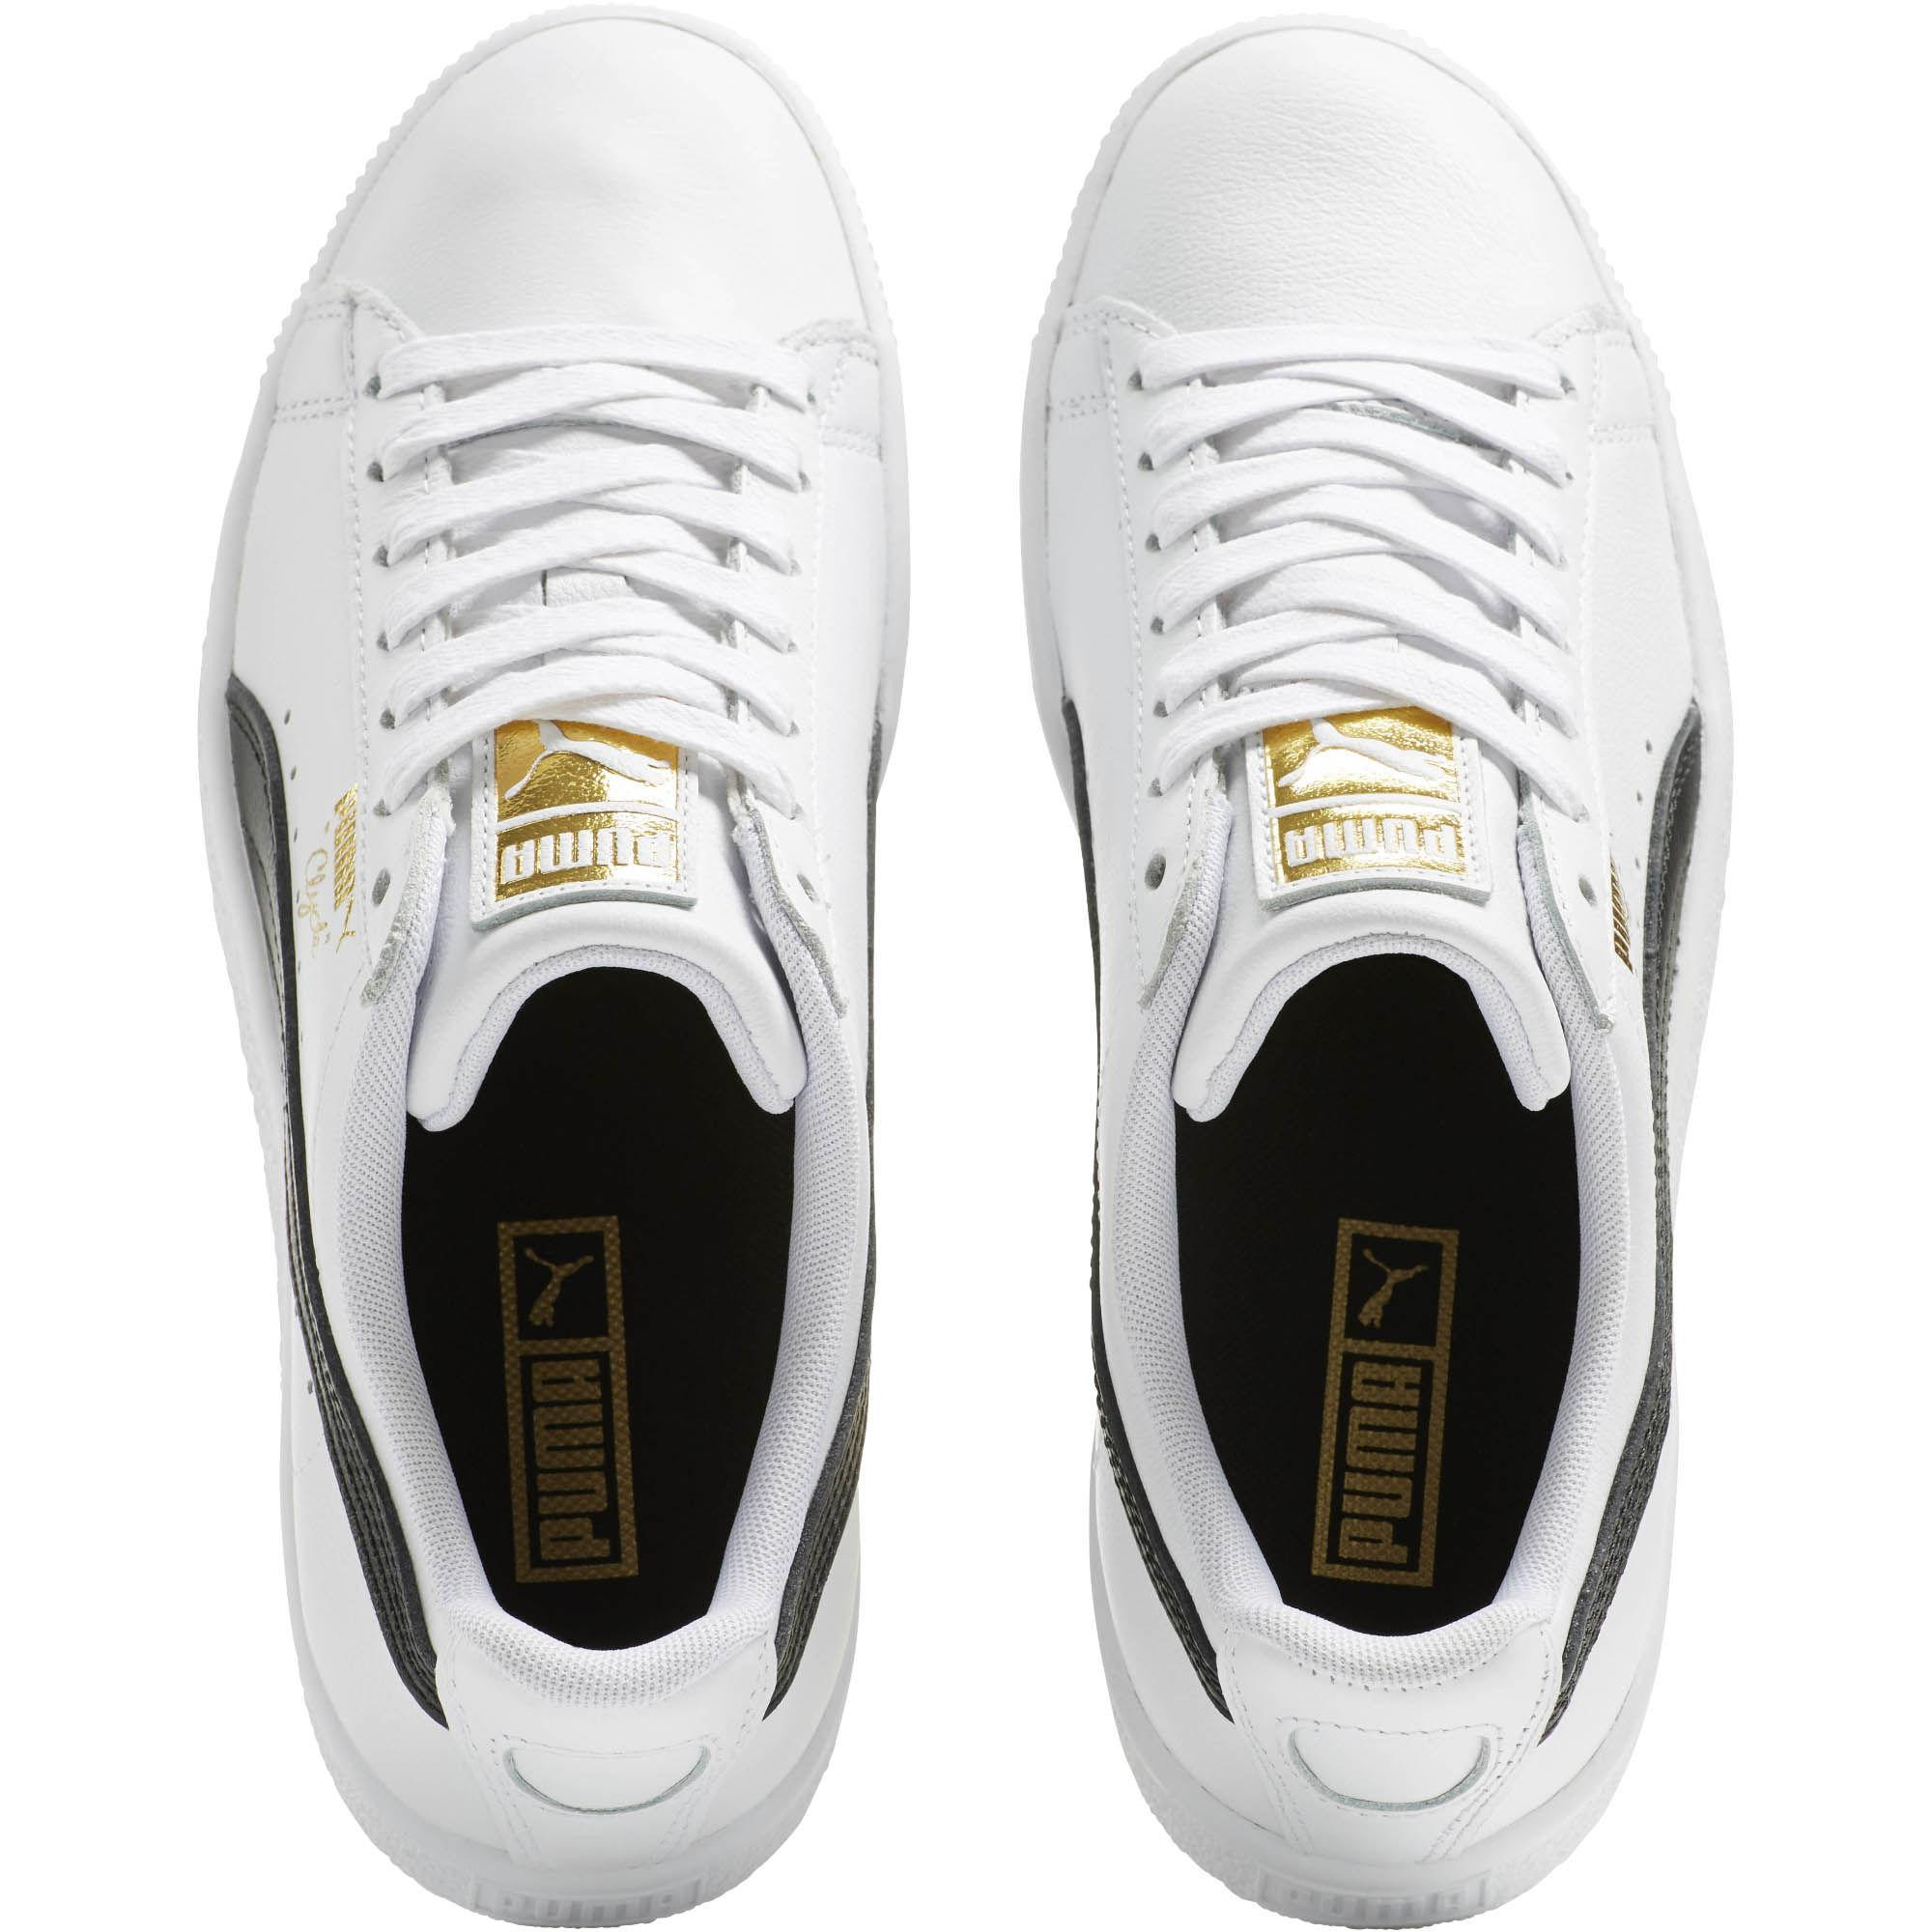 ... 99e0c 76465 Lyst - Puma Clyde Core Foil Women s Sneakers in White  various styles ... d57e981cf611